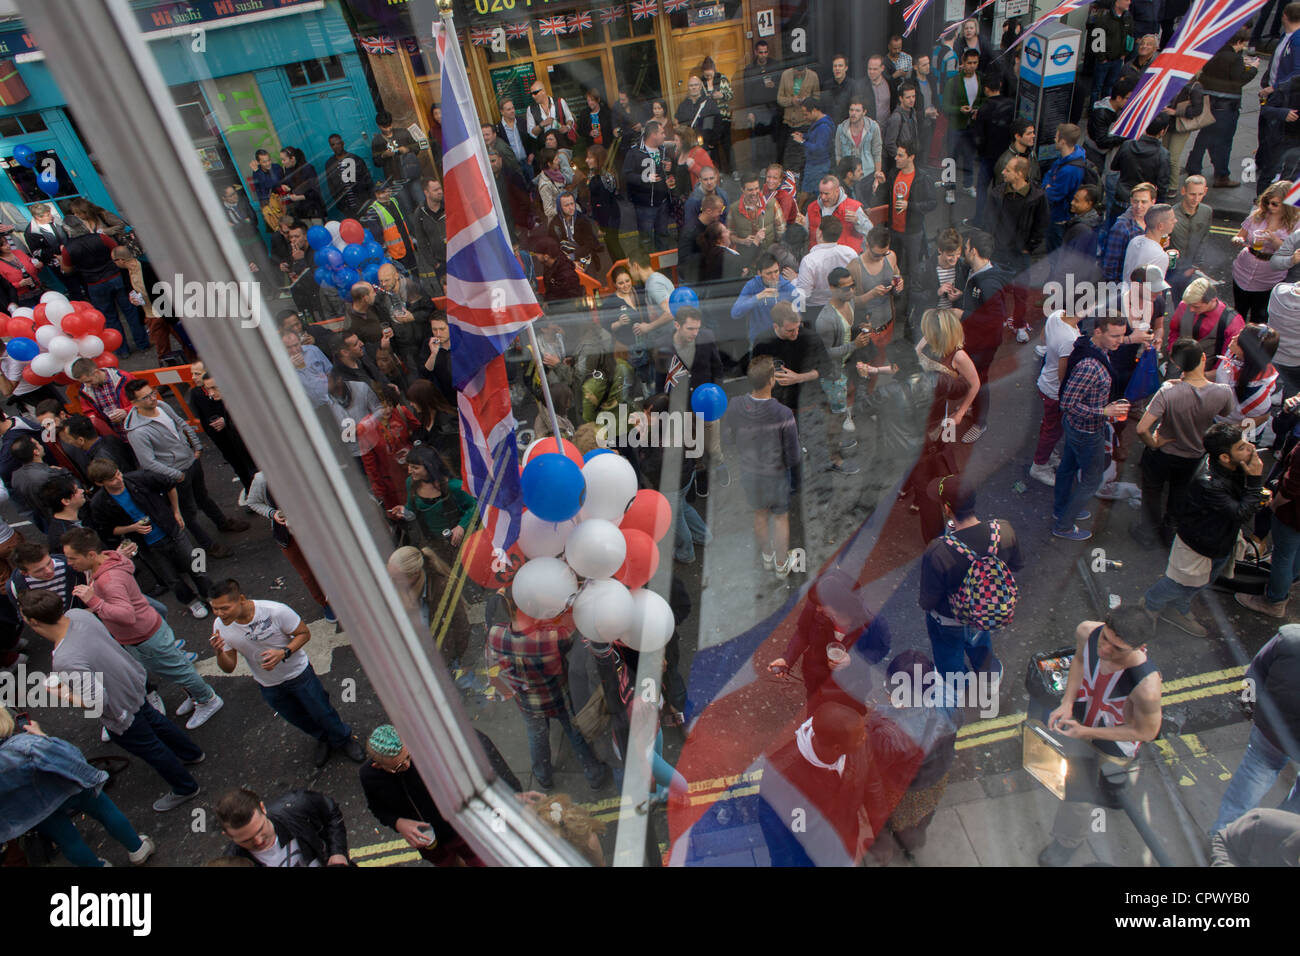 Soho celebrates the Queen's Diamond Jubilee weeks before the Olympics come to London. The UK gears enjoys a weekend Stock Photo